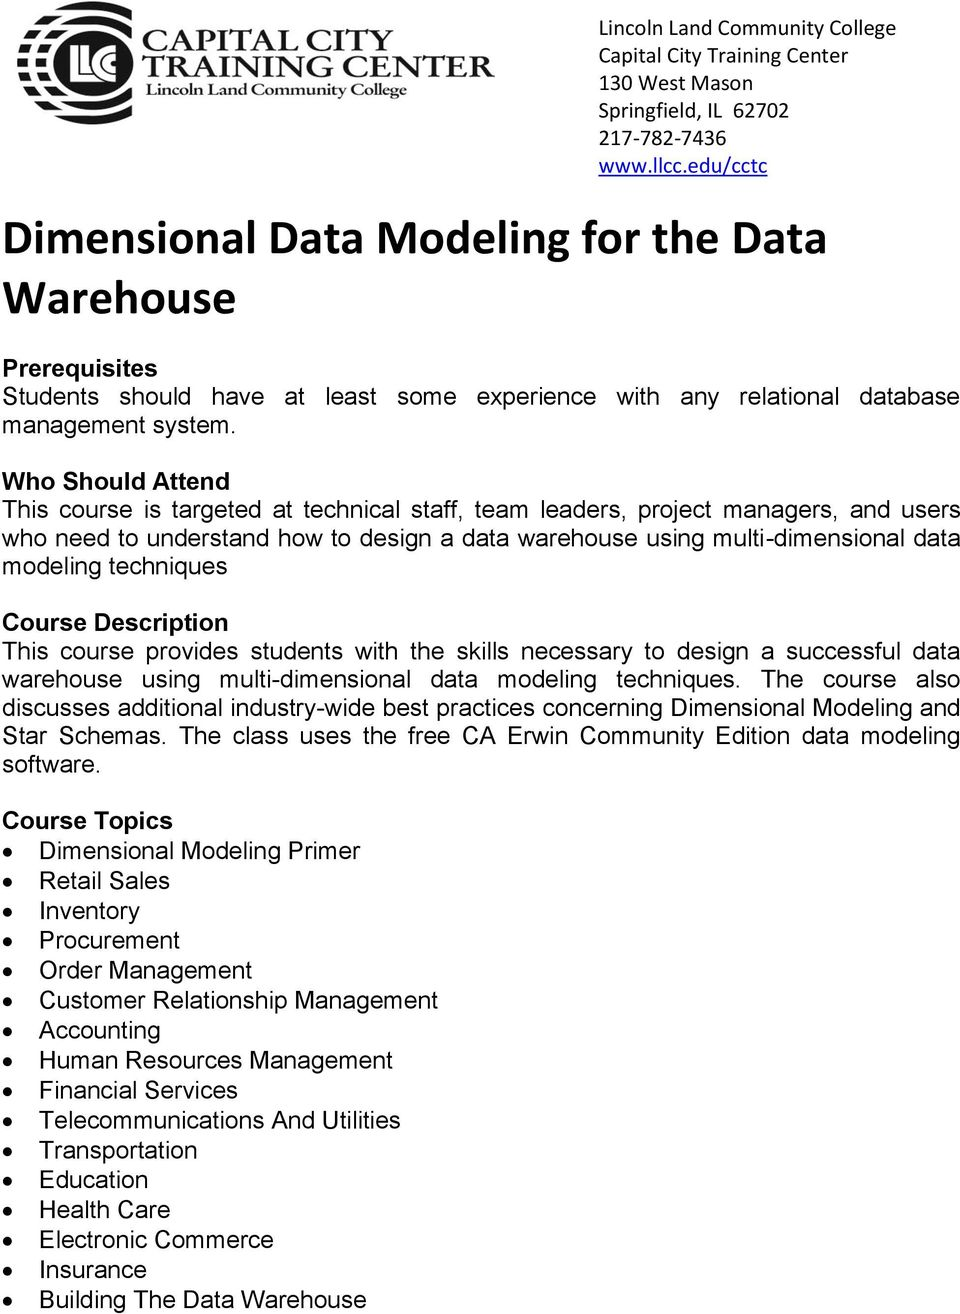 Dimensional Data Modeling for the Data Warehouse - PDF